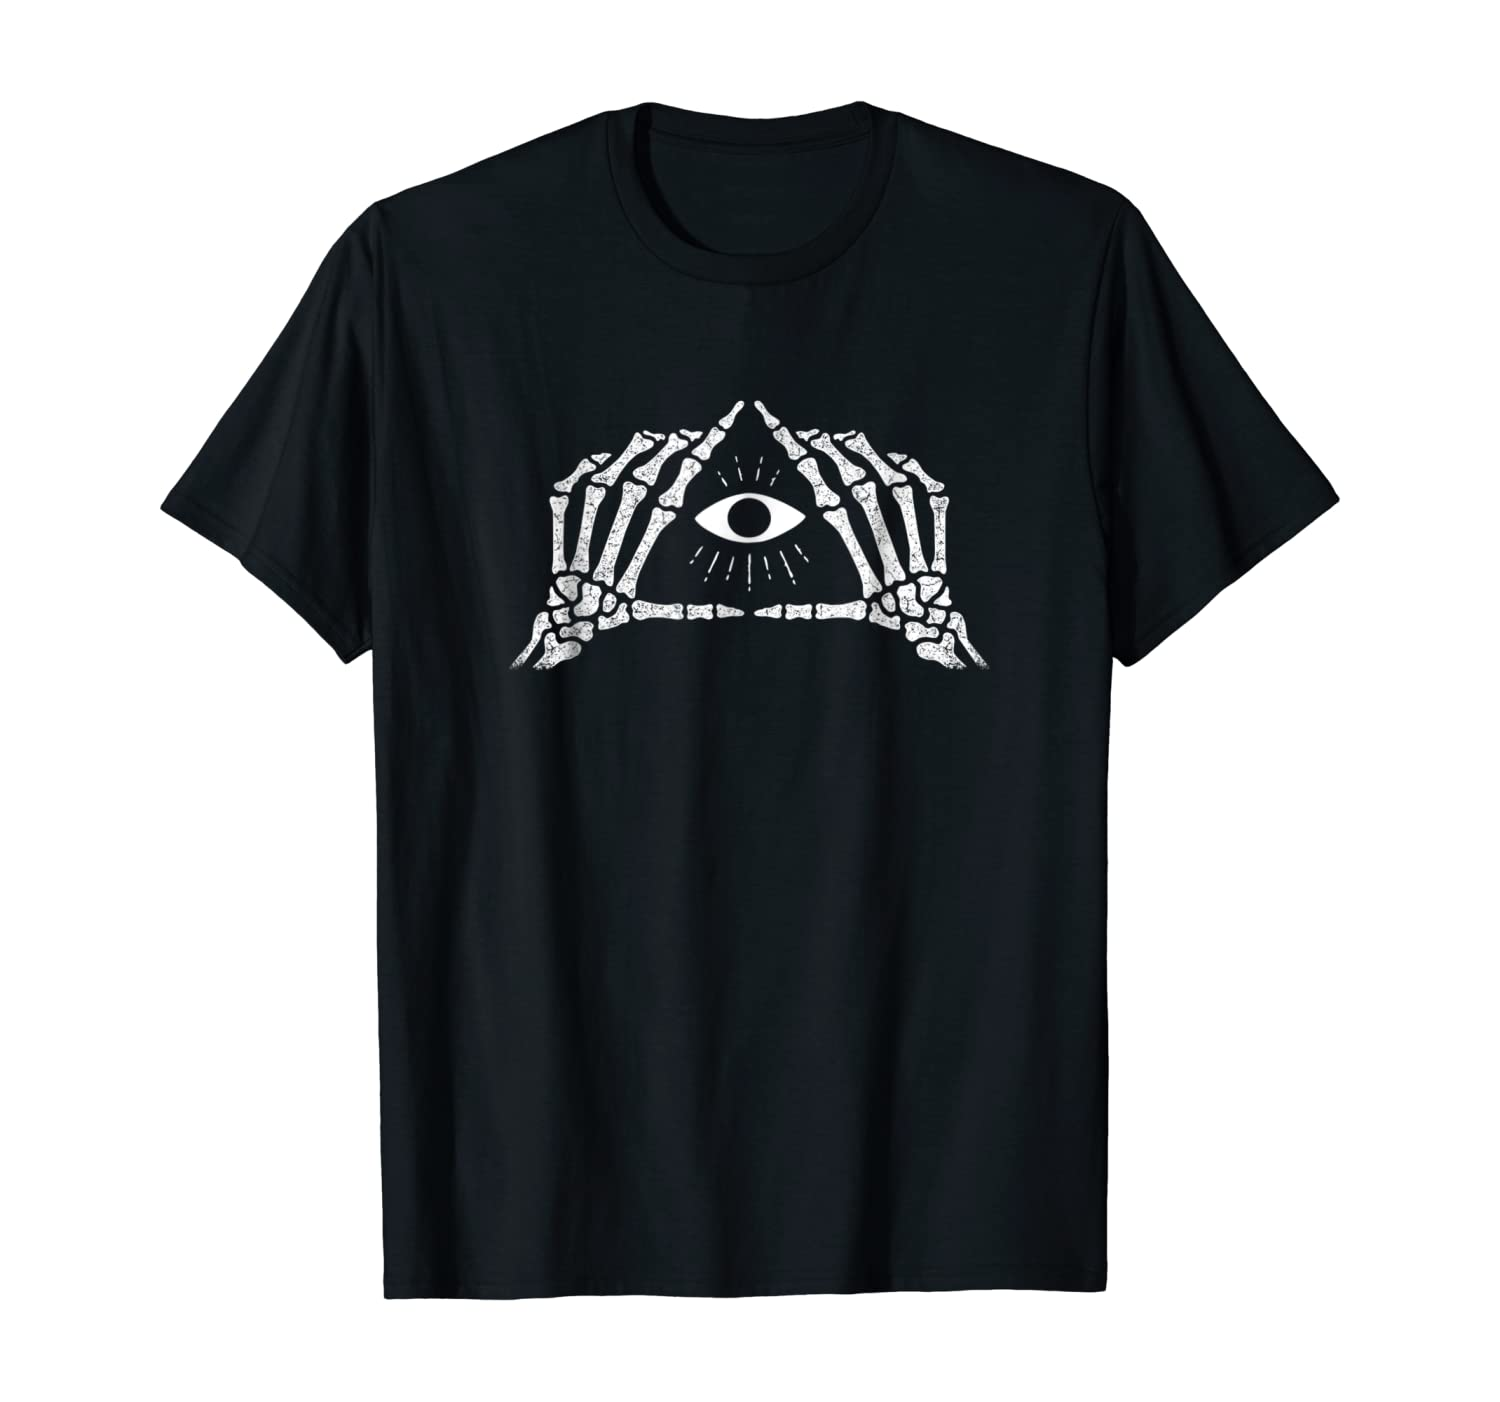 Shane Dawson Skeleton All-Seeing Eye T-Shirt